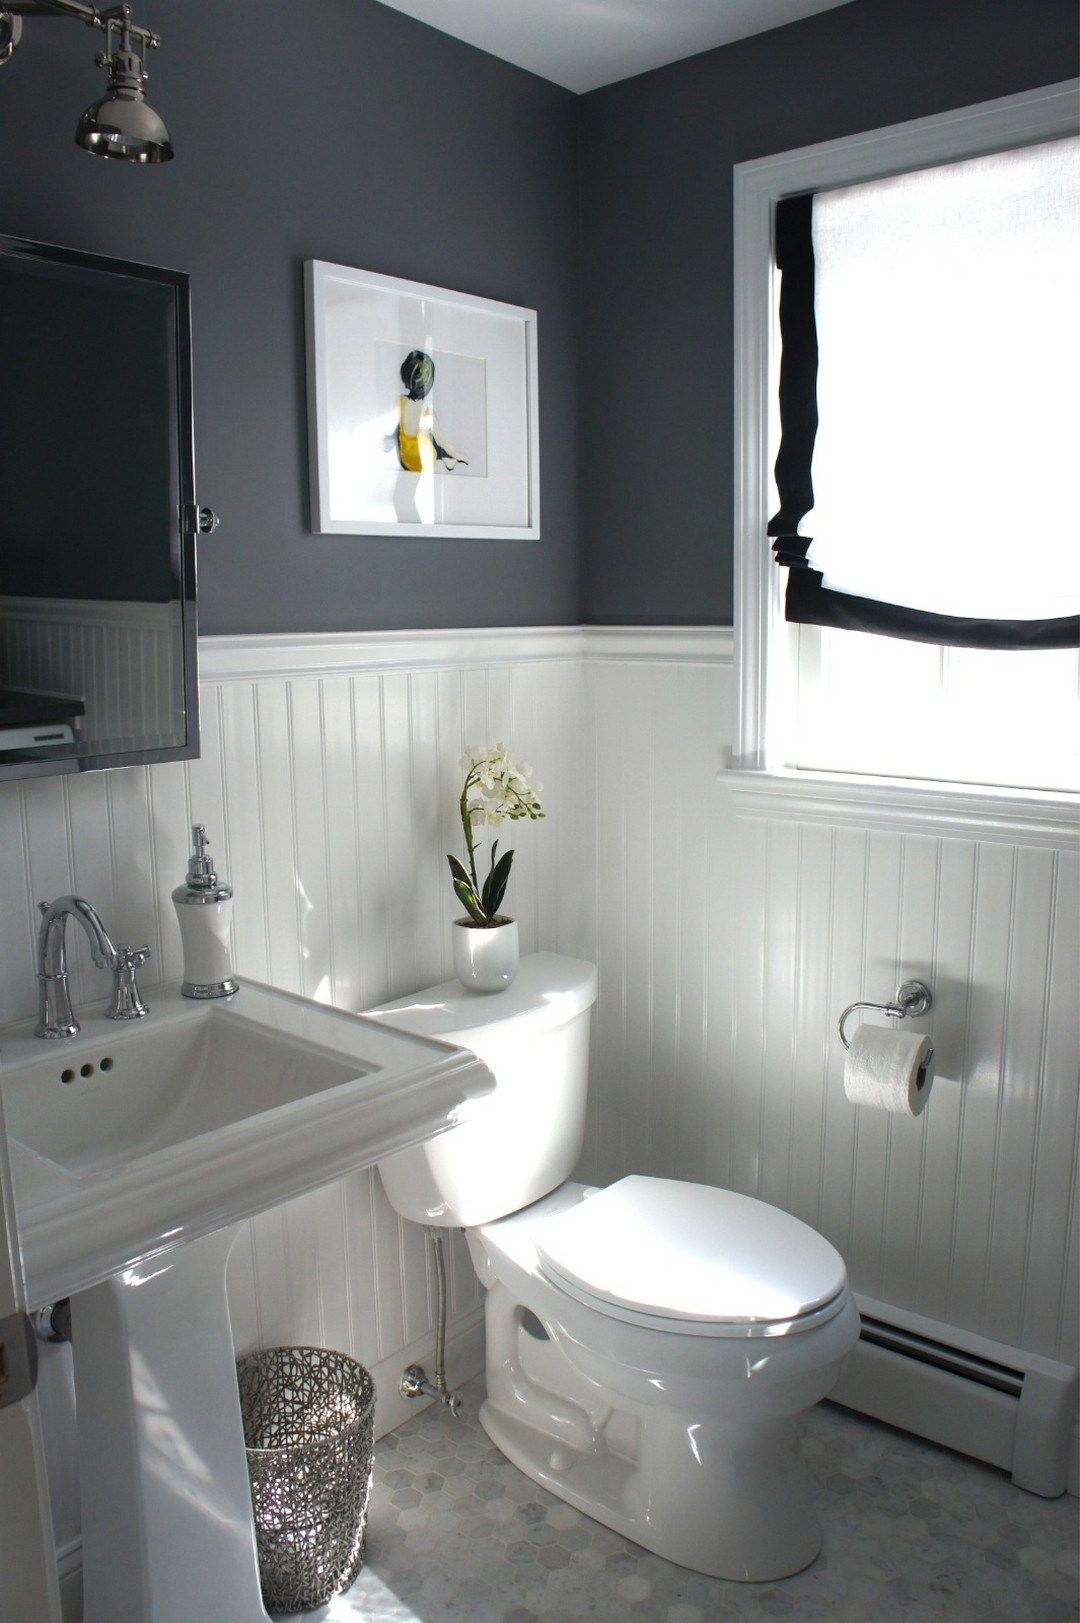 99 small master bathroom makeover ideas on a budget 48 for Small bath ideas